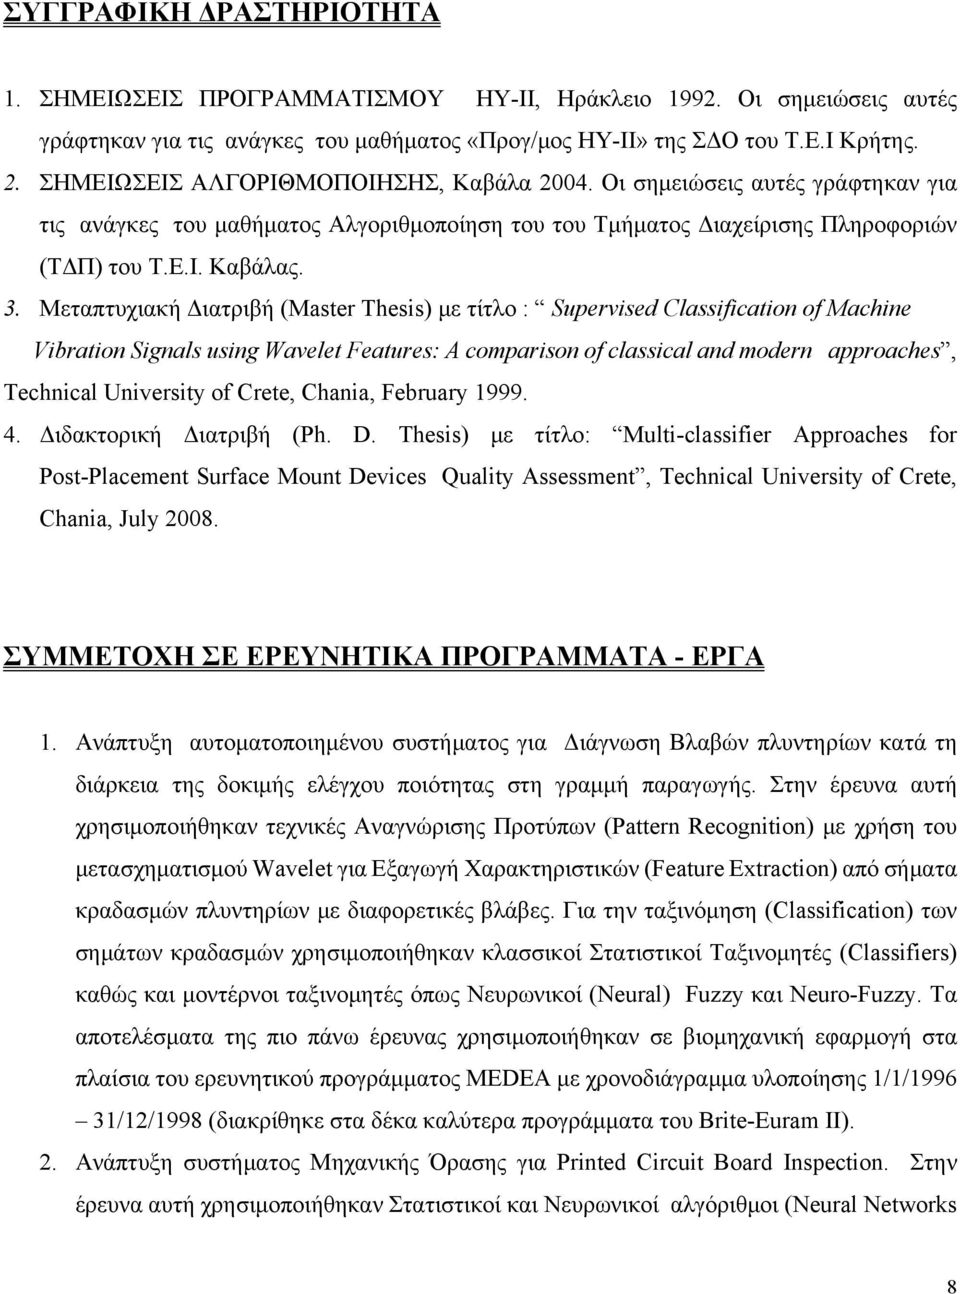 Μεταπτυχιακή Διατριβή (Master Thesis) με τίτλο : Supervised Classification of Machine Vibration Signals using Wavelet Features: A comparison of classical and modern approaches, Technical University